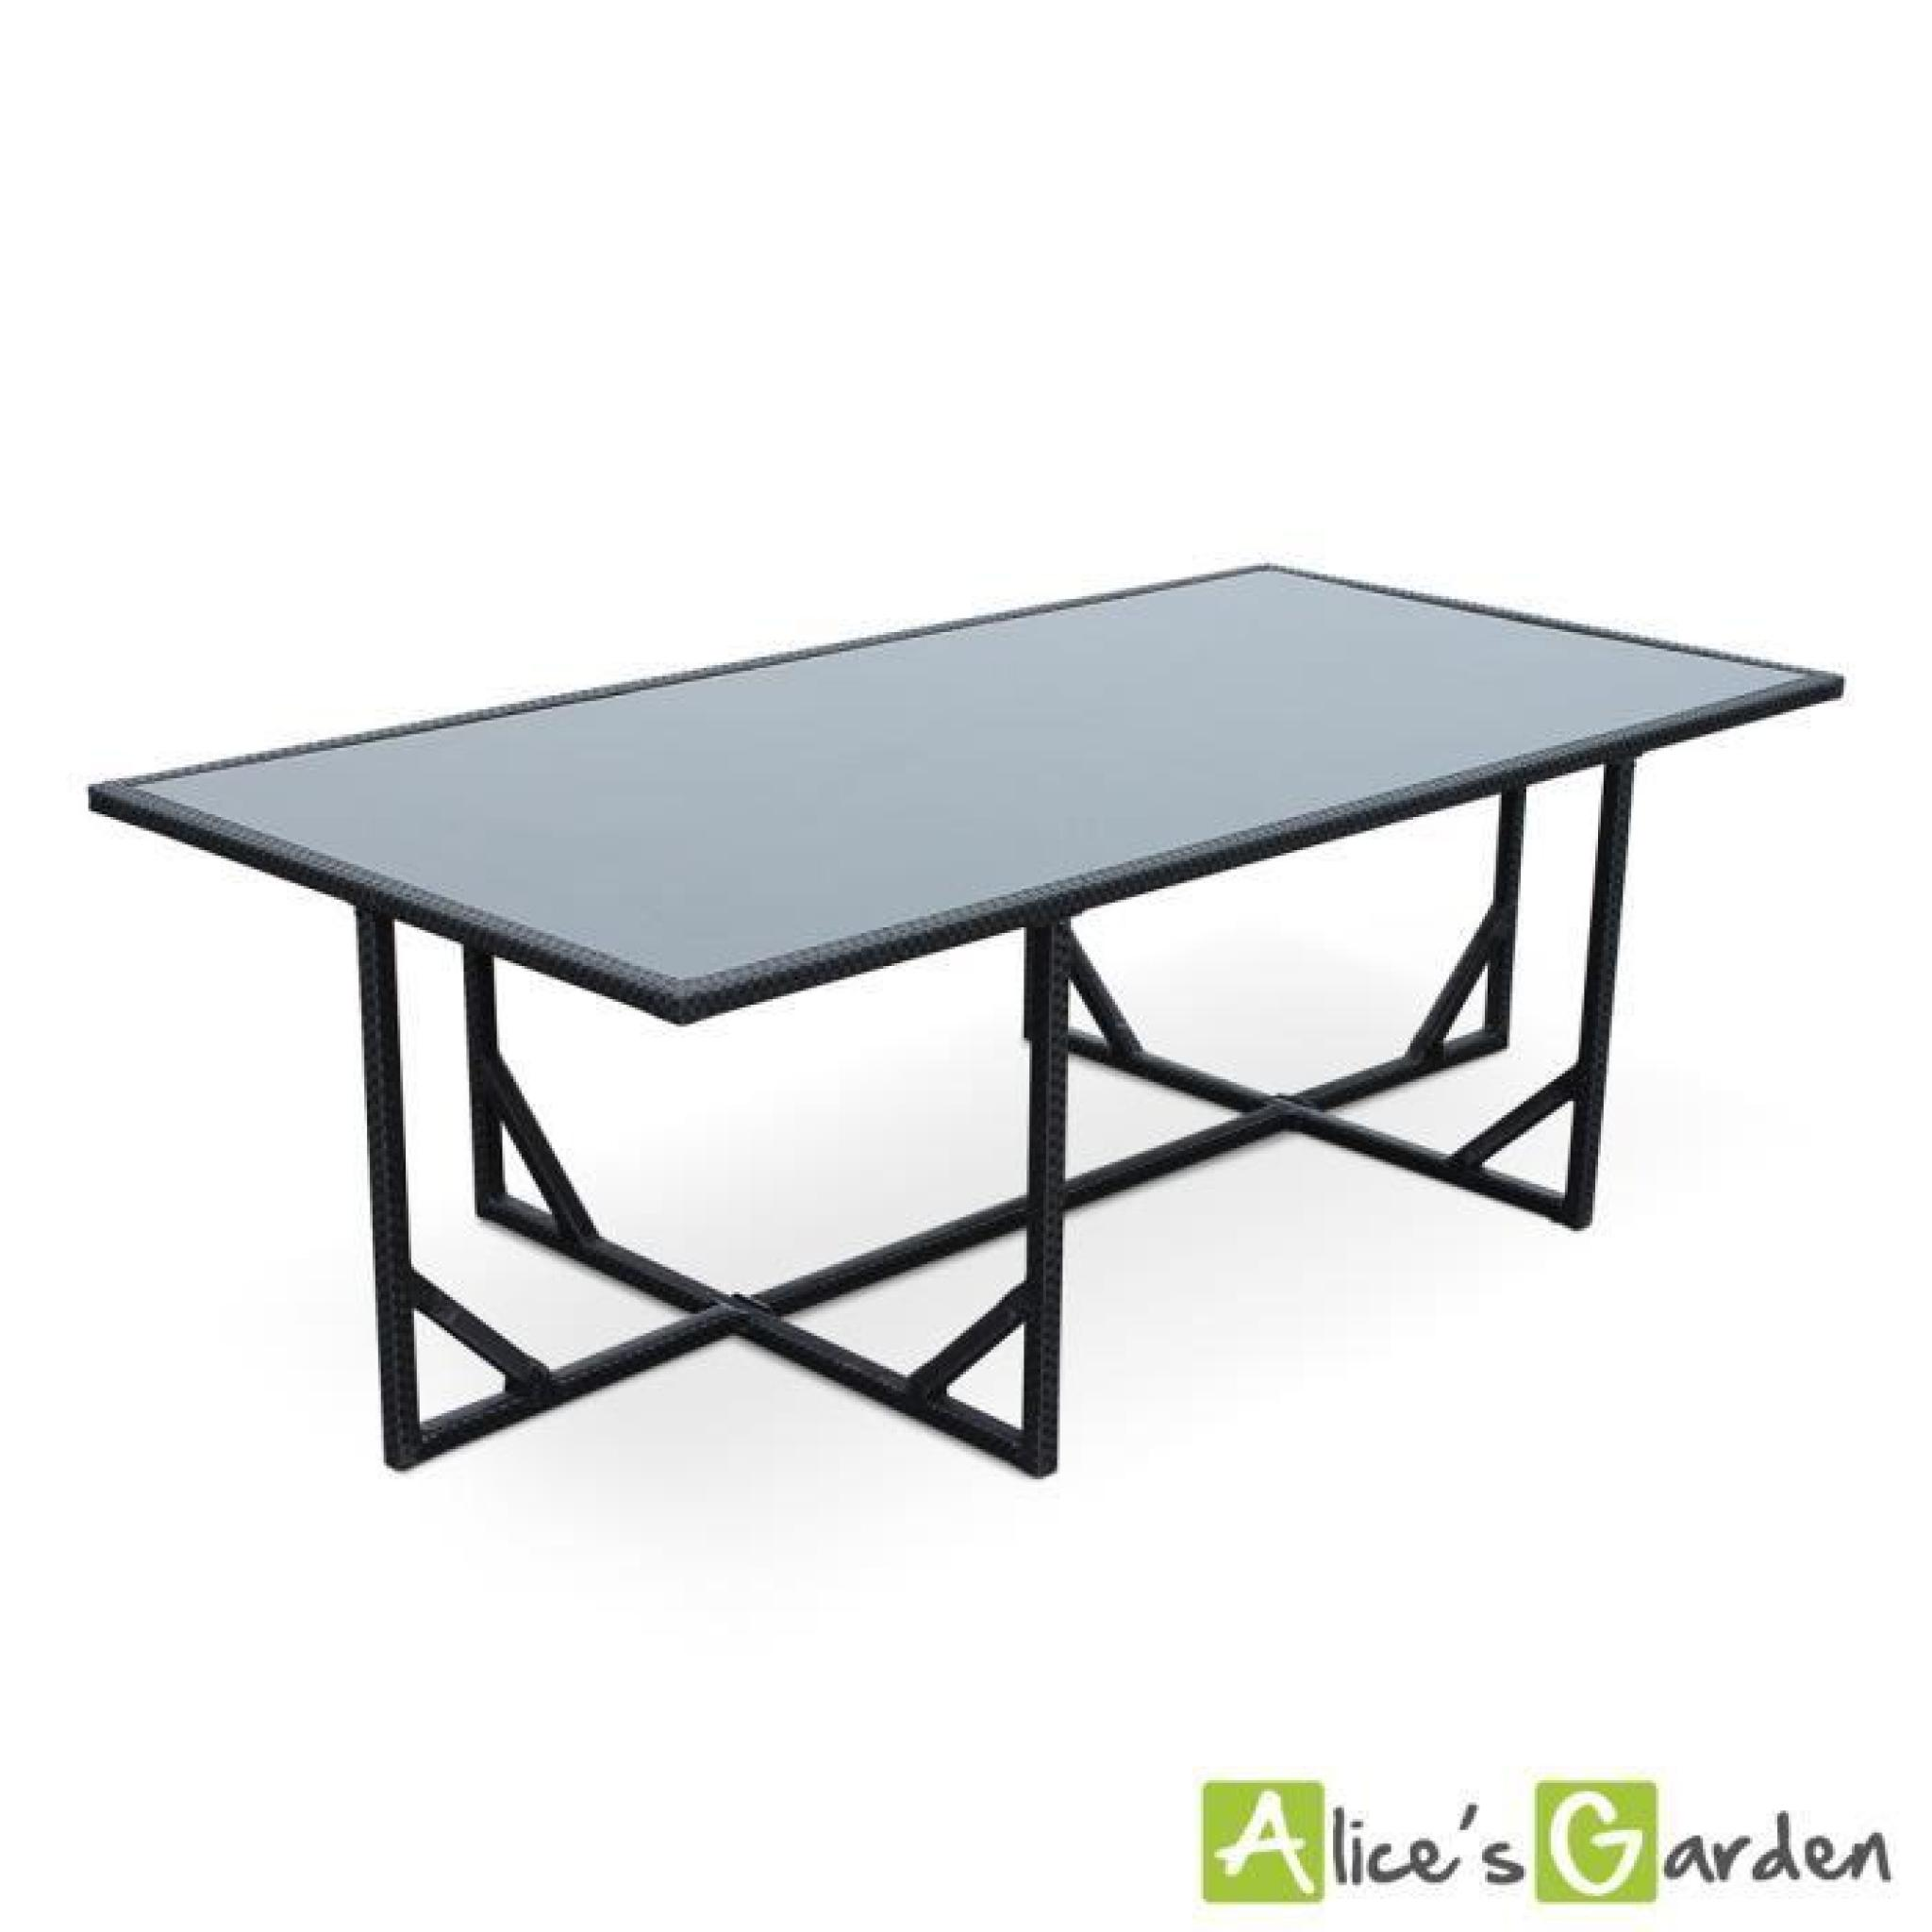 Salon De Jardin Vasto Noir Table En R Sine Tress E 8 12